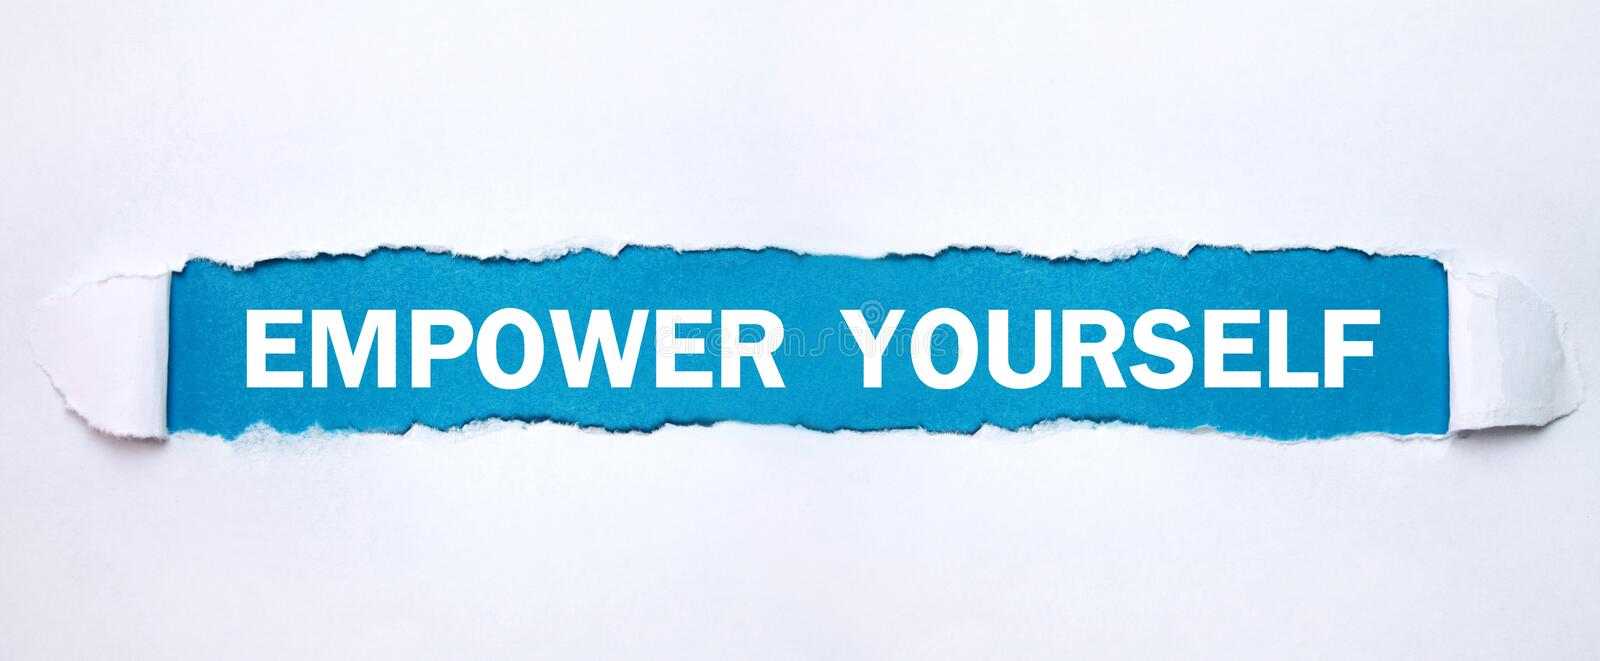 Text Empower Yourself on torn paper royalty free stock image